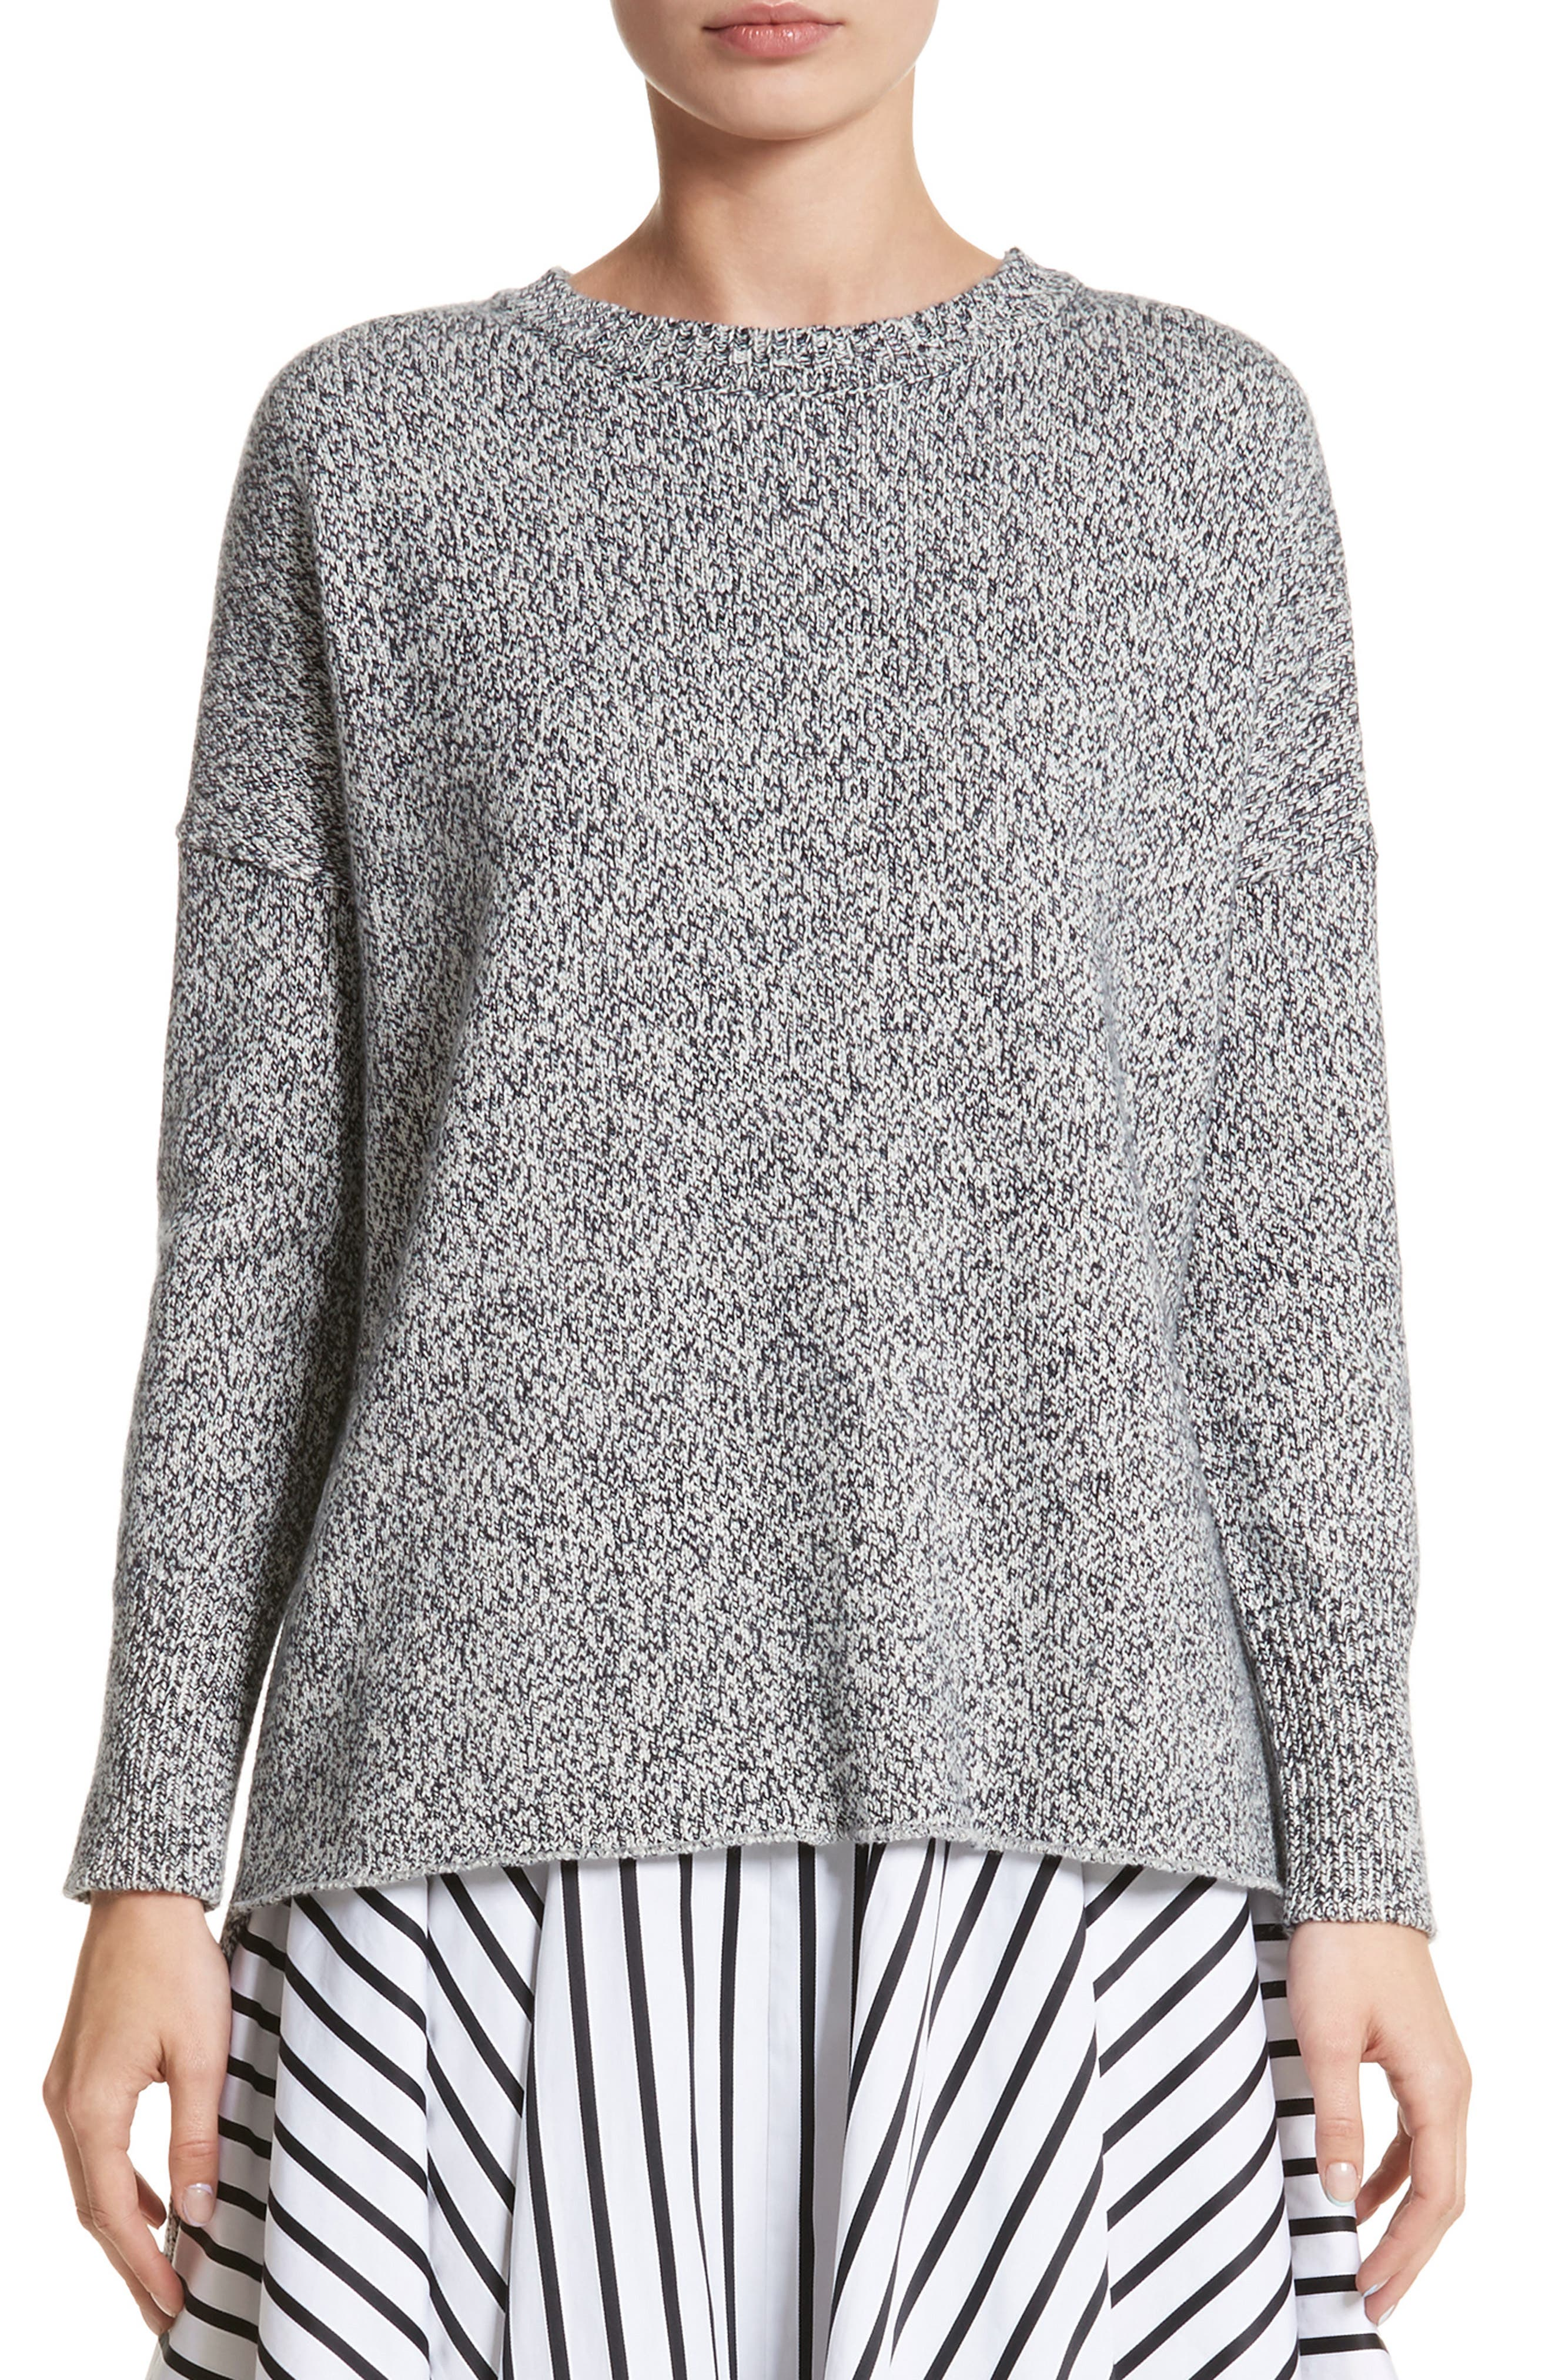 Marled Cotton, Cashmere & Silk Sweater,                         Main,                         color, Grey